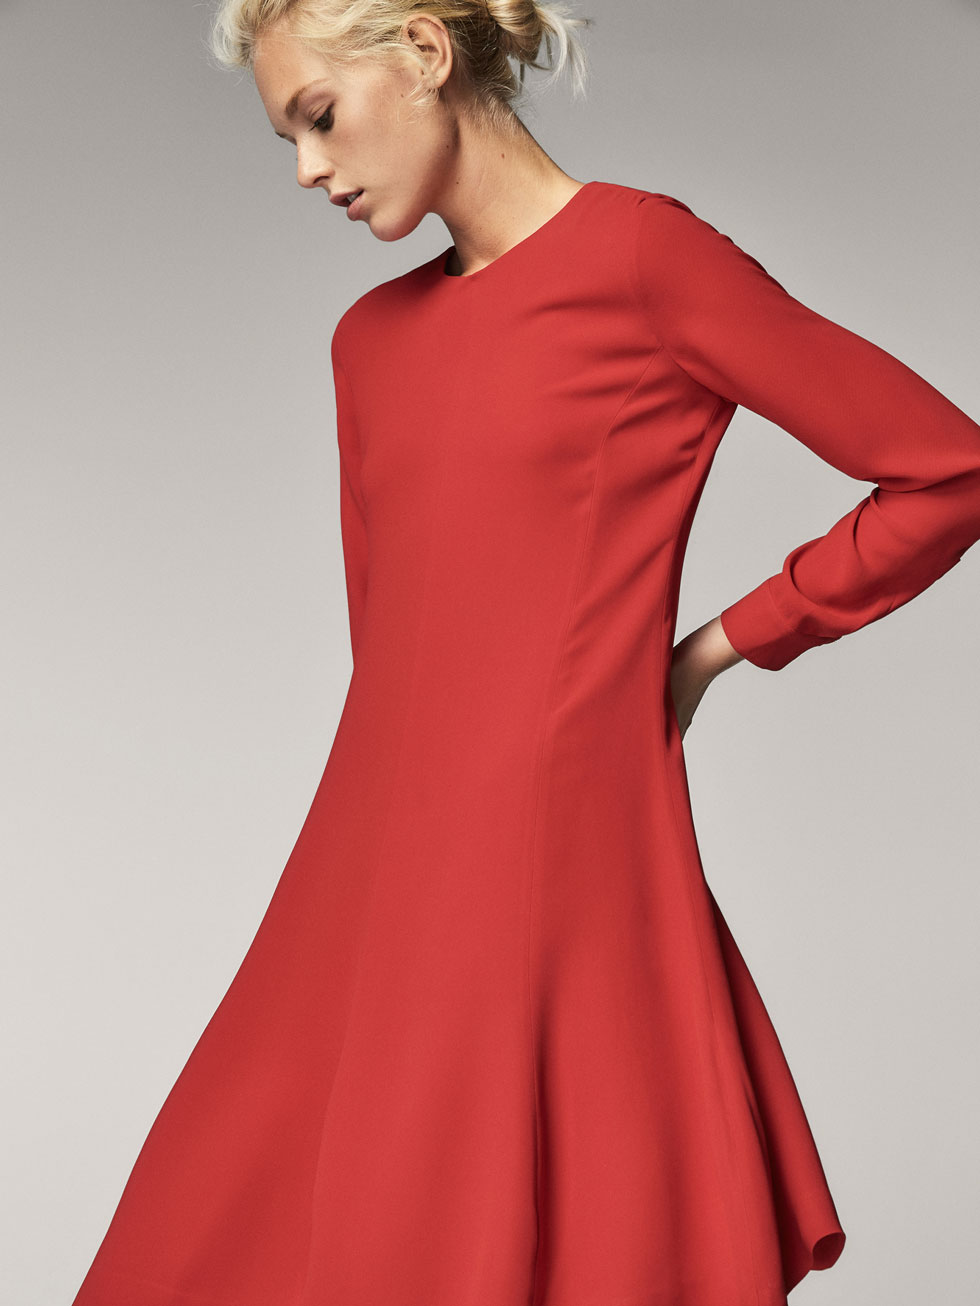 RED A-LINE DRESS - Women - Massimo Dutti